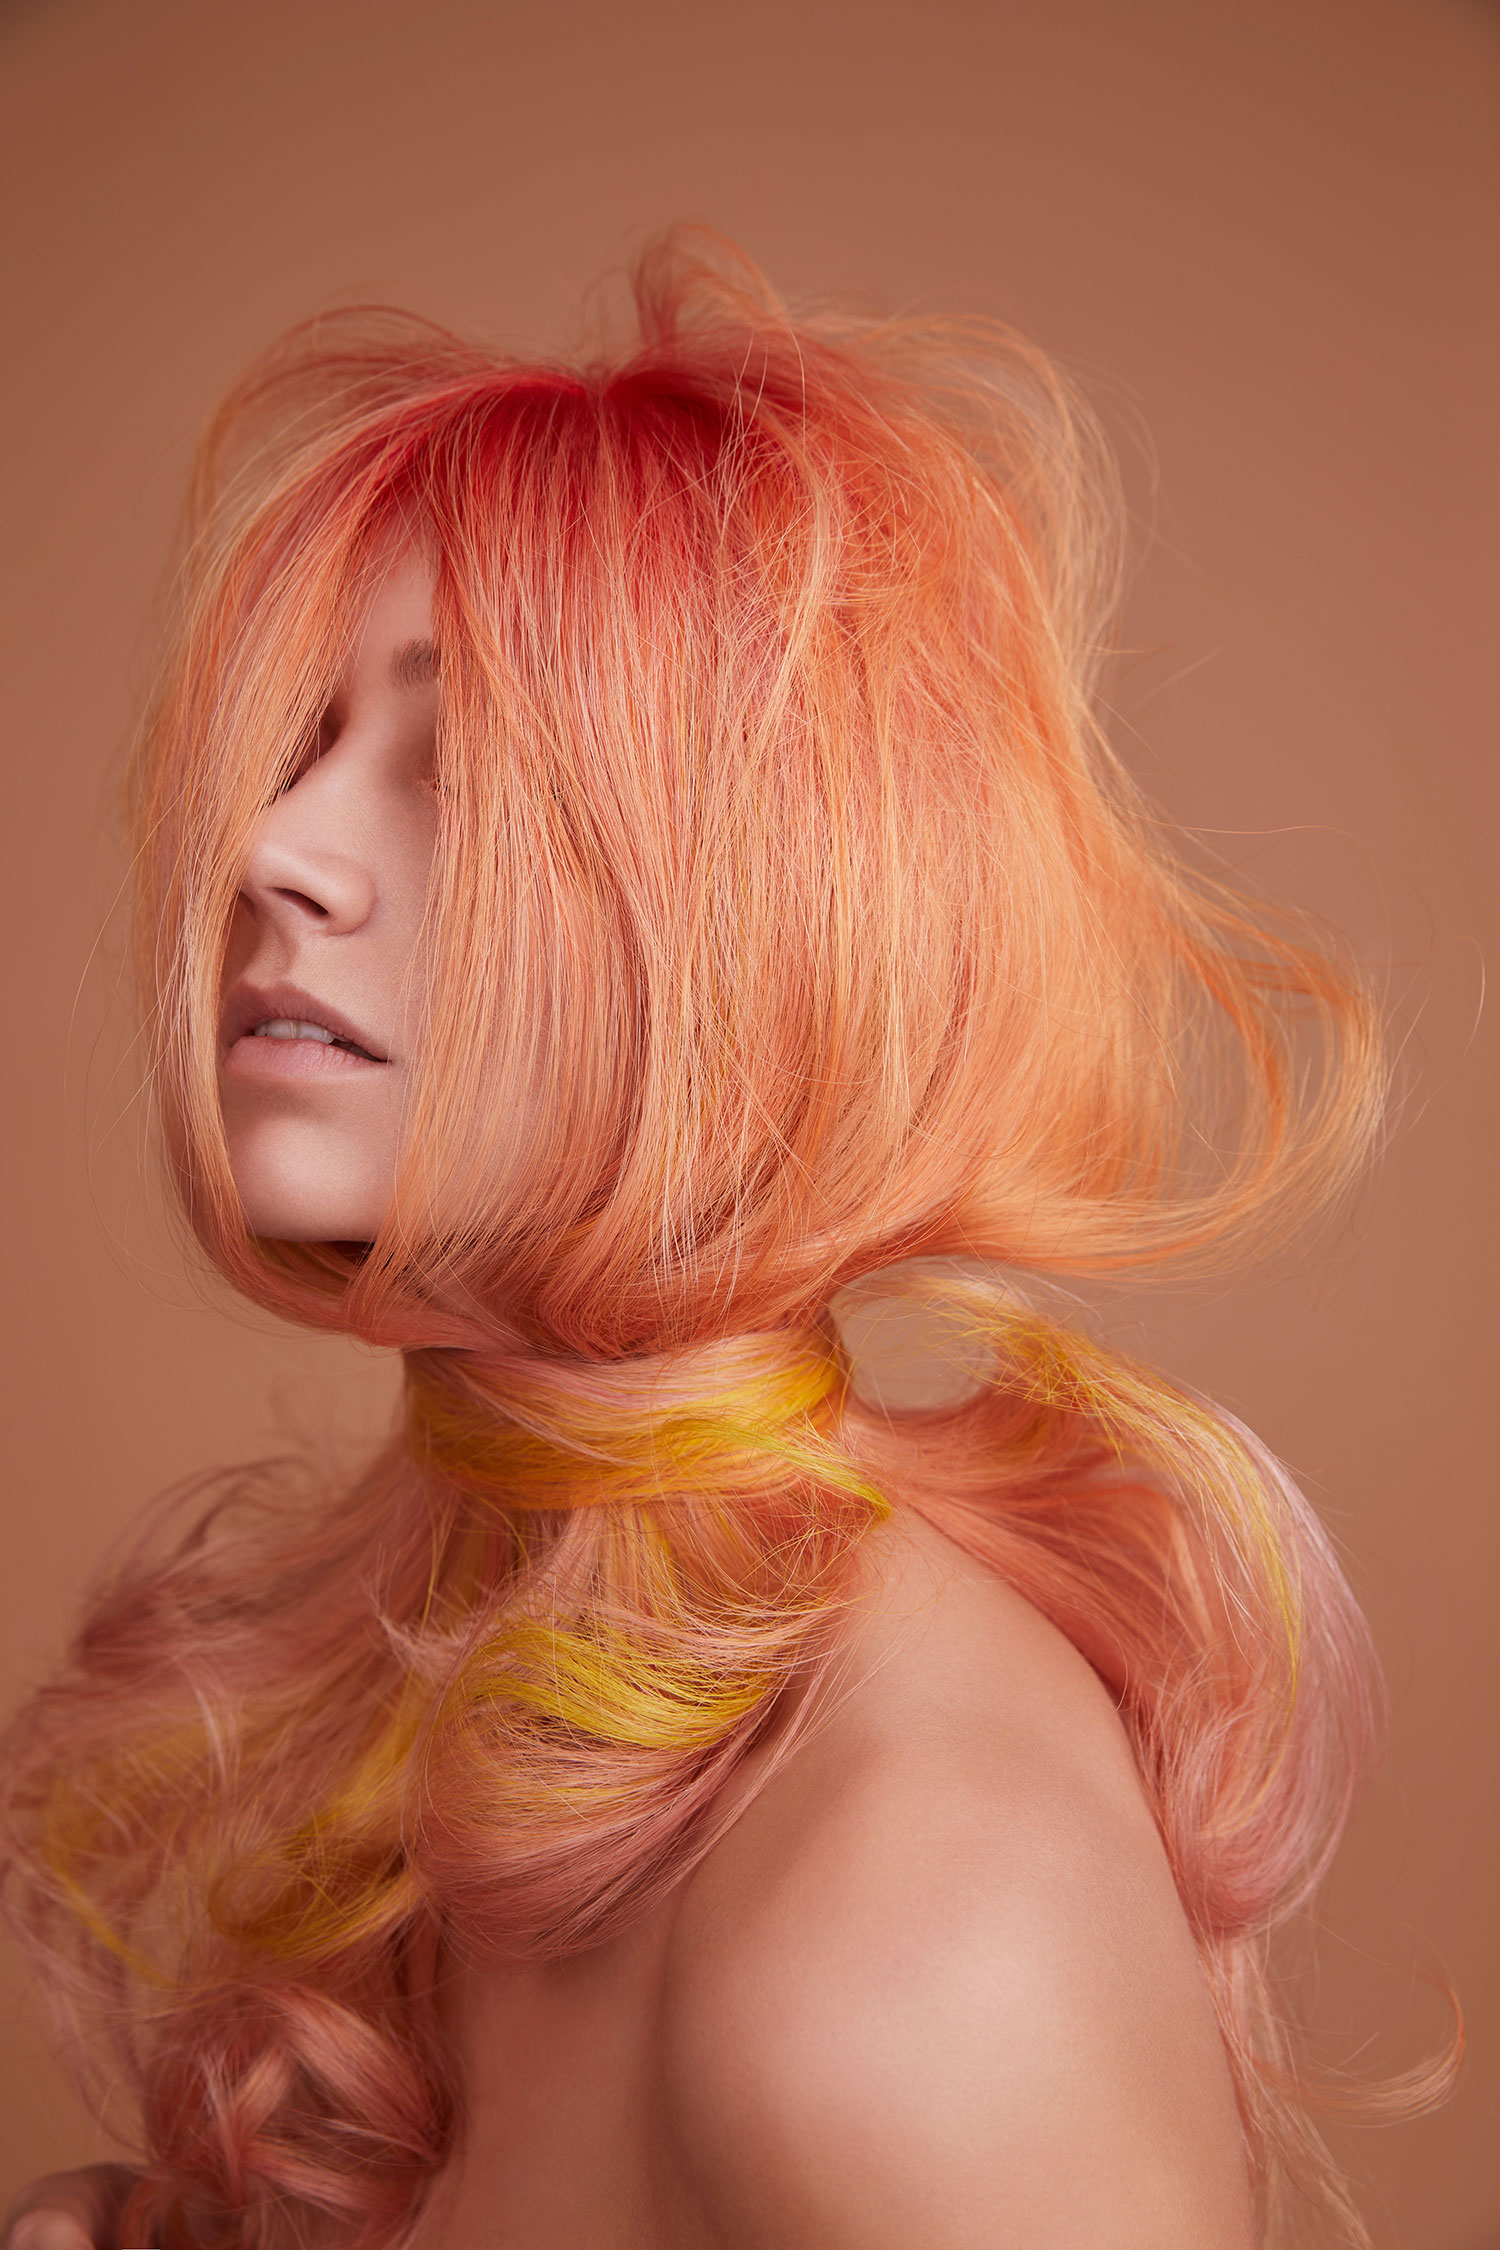 pantone+colour+of+the+year+hairdresser+living+coral+peach+pastel+farbe+wien+balayage+farbspezialist+ahda+austrian+award+lizzy+lemon+ginger+wien+1060+friseur.jpeg